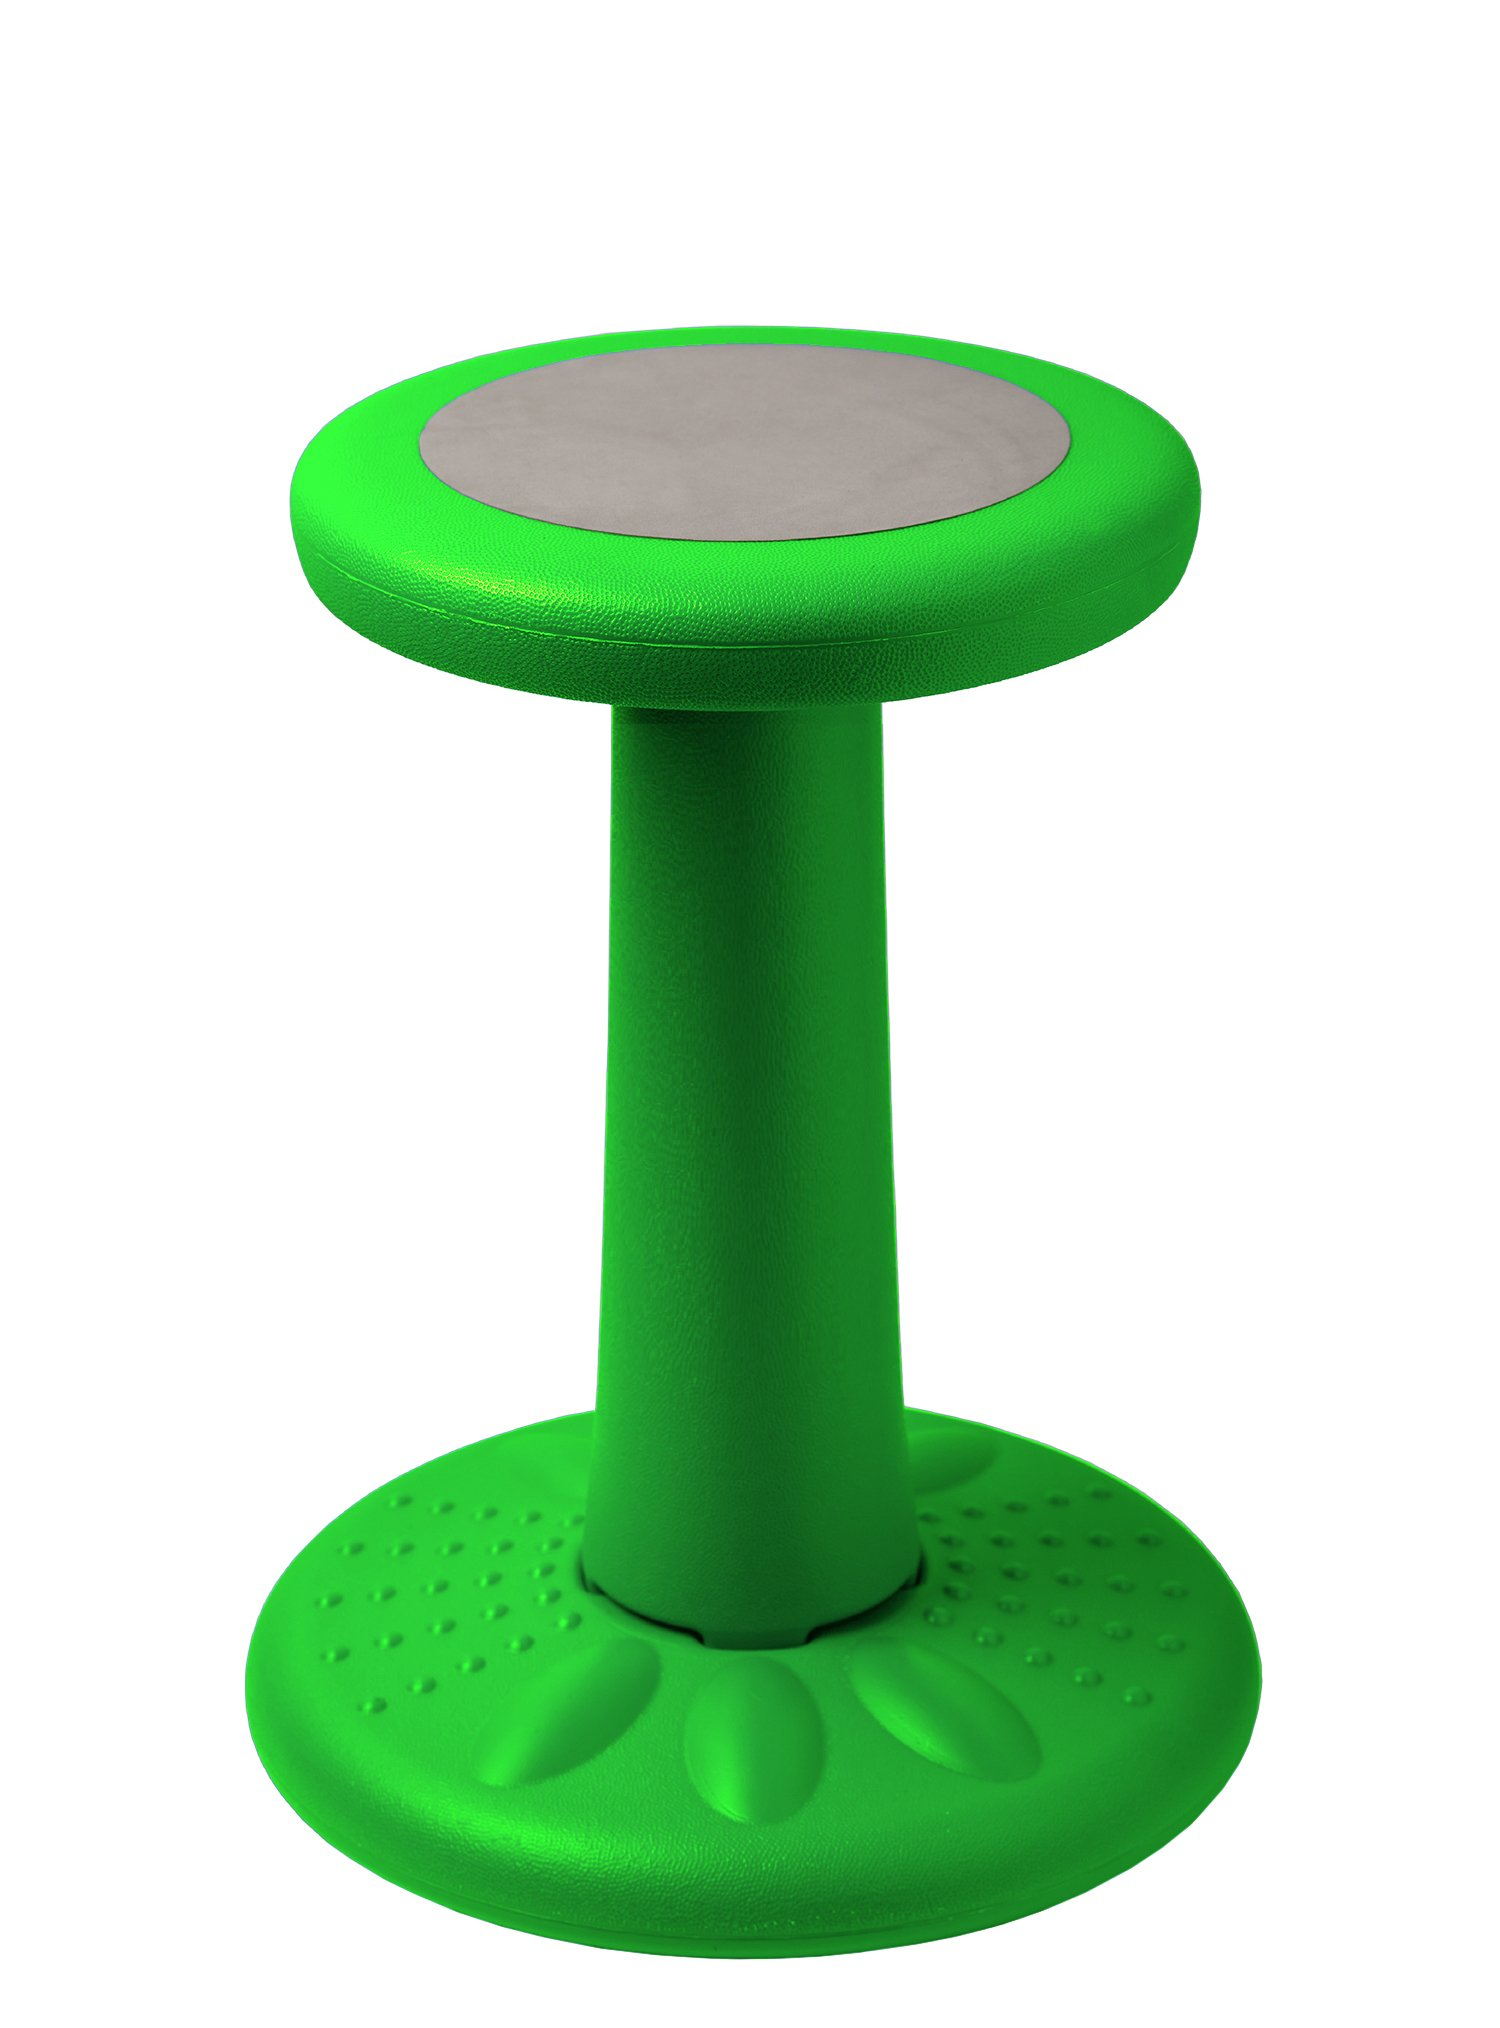 Active Kids Chair – Wobble Chair Juniors/Pre-Teens (Grades 3-7) - Age Range 7-12 - Flexible Seating Classroom - 17.75'' Tall - Helps ADD/ADHD - Corrects Posture – Green